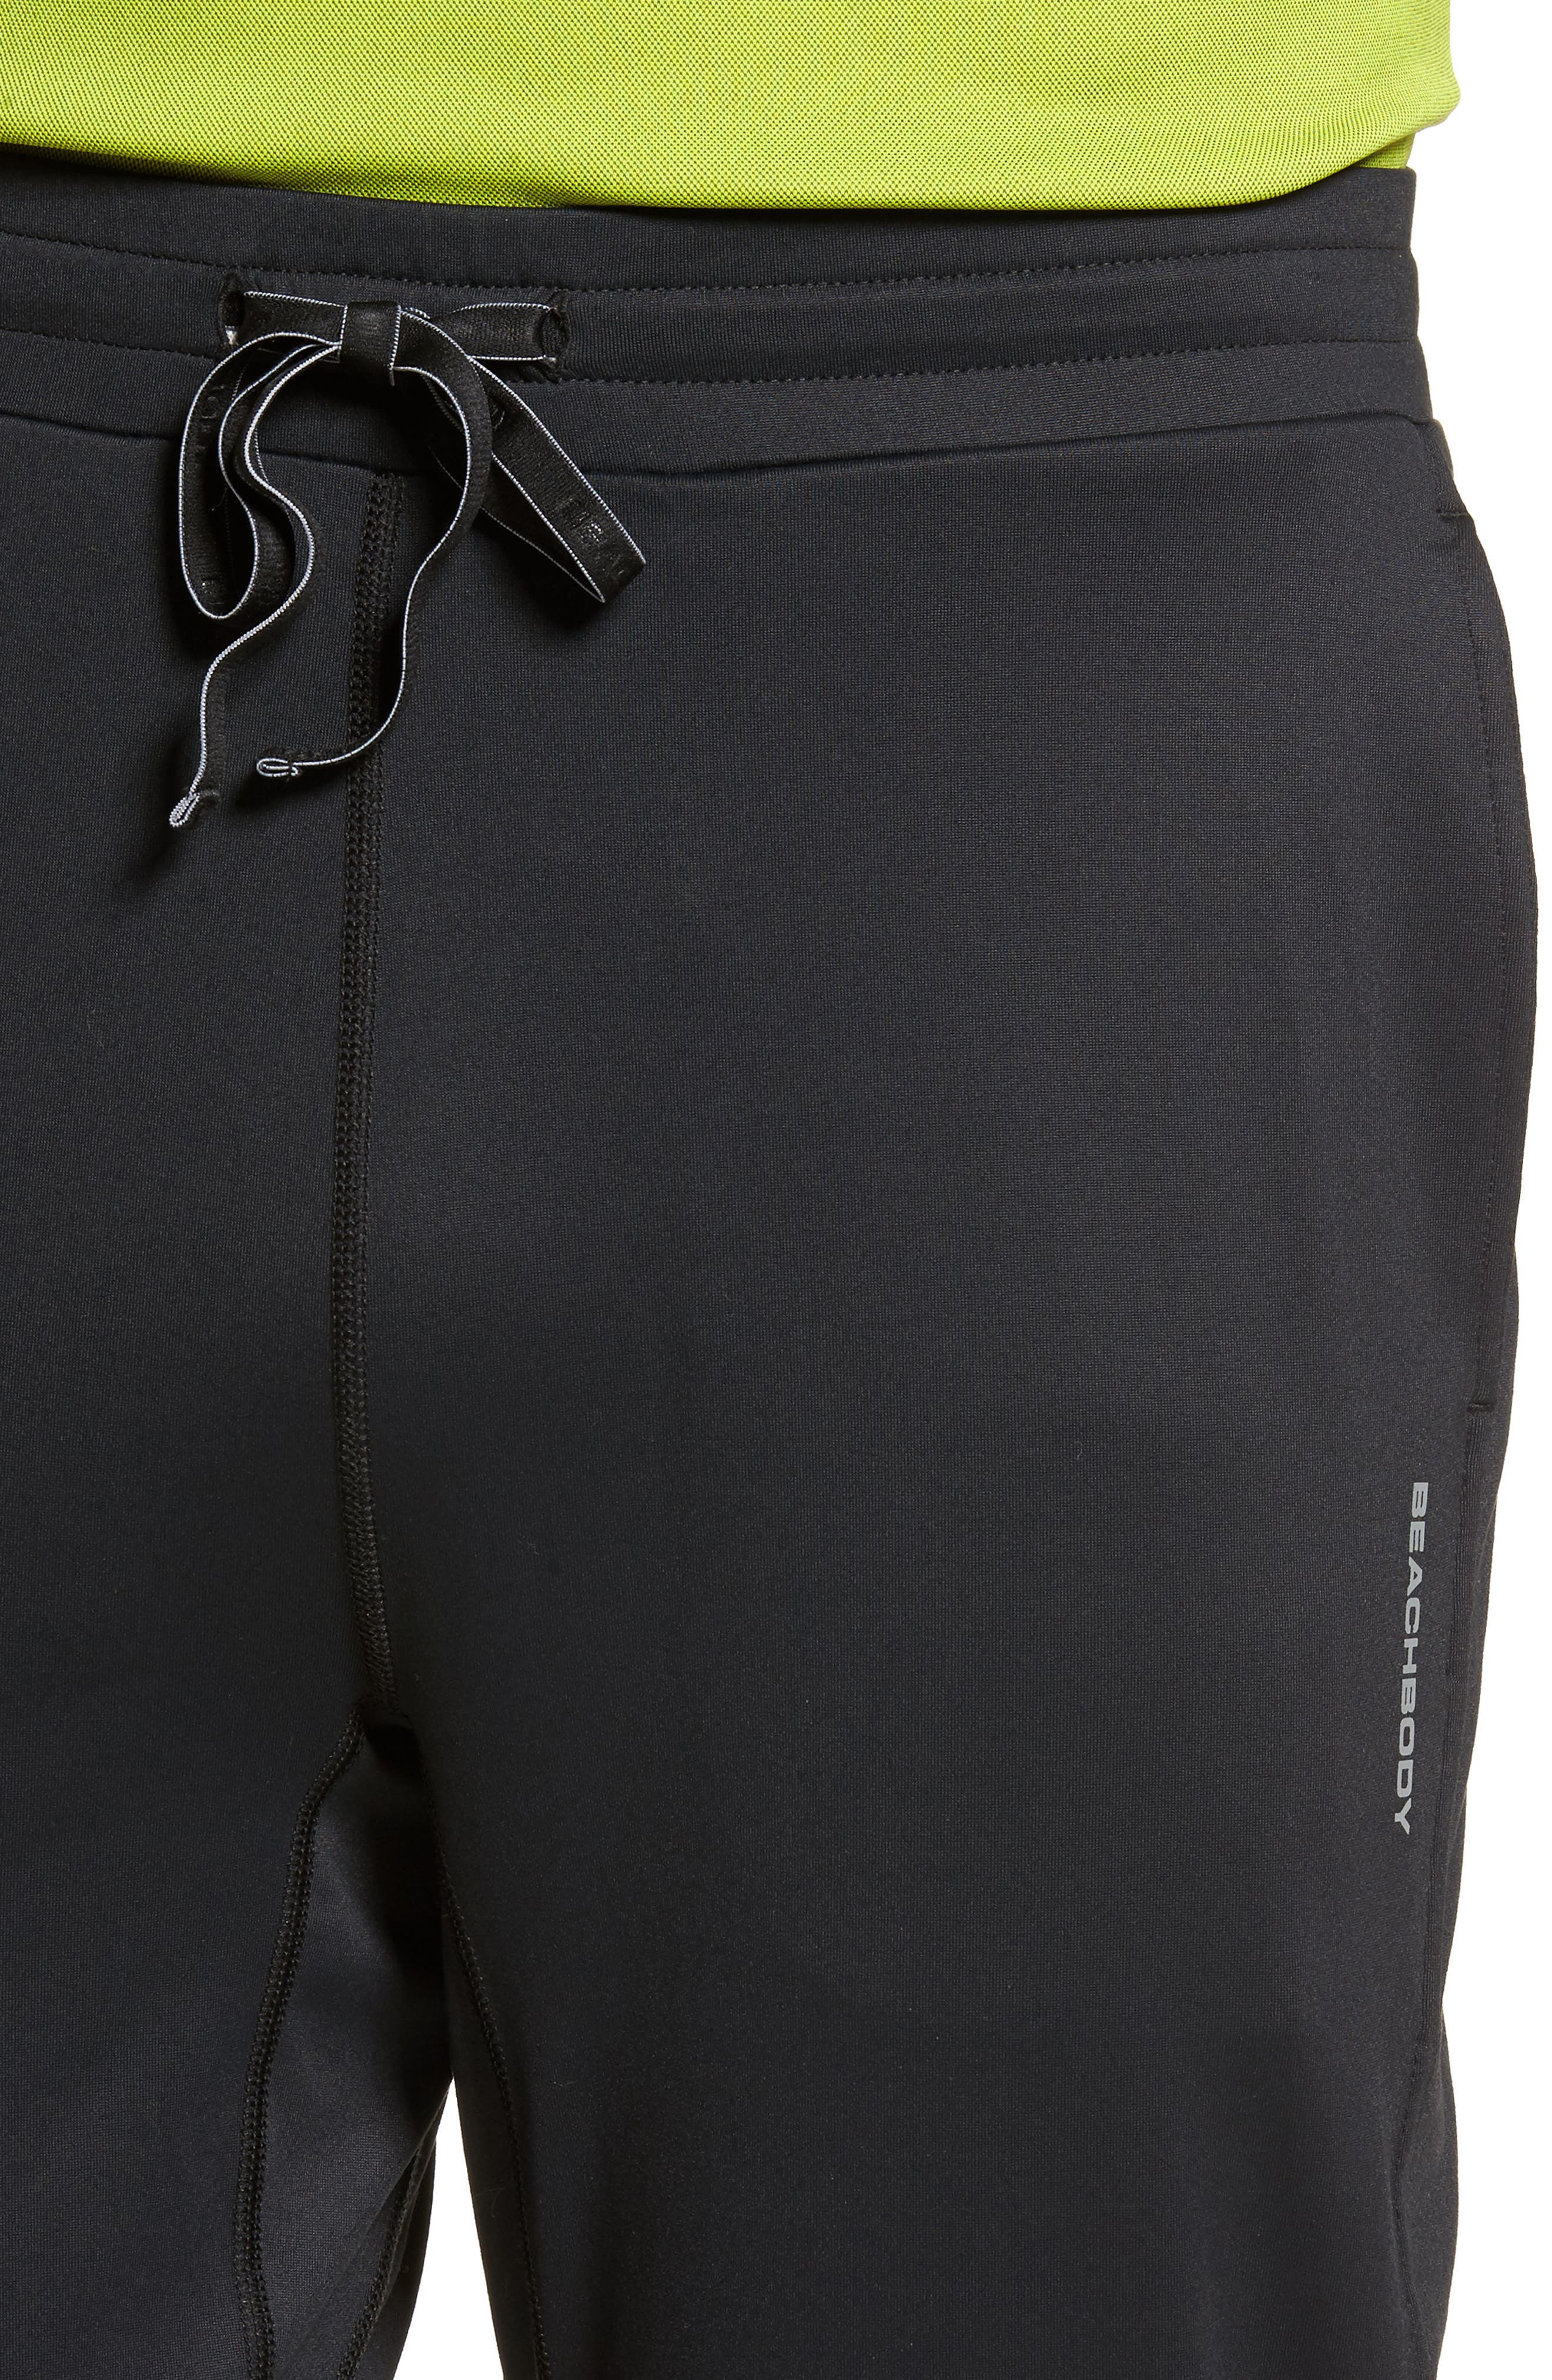 Go-To Slim Athletic Pants,                             Alternate thumbnail 4, color,                             001